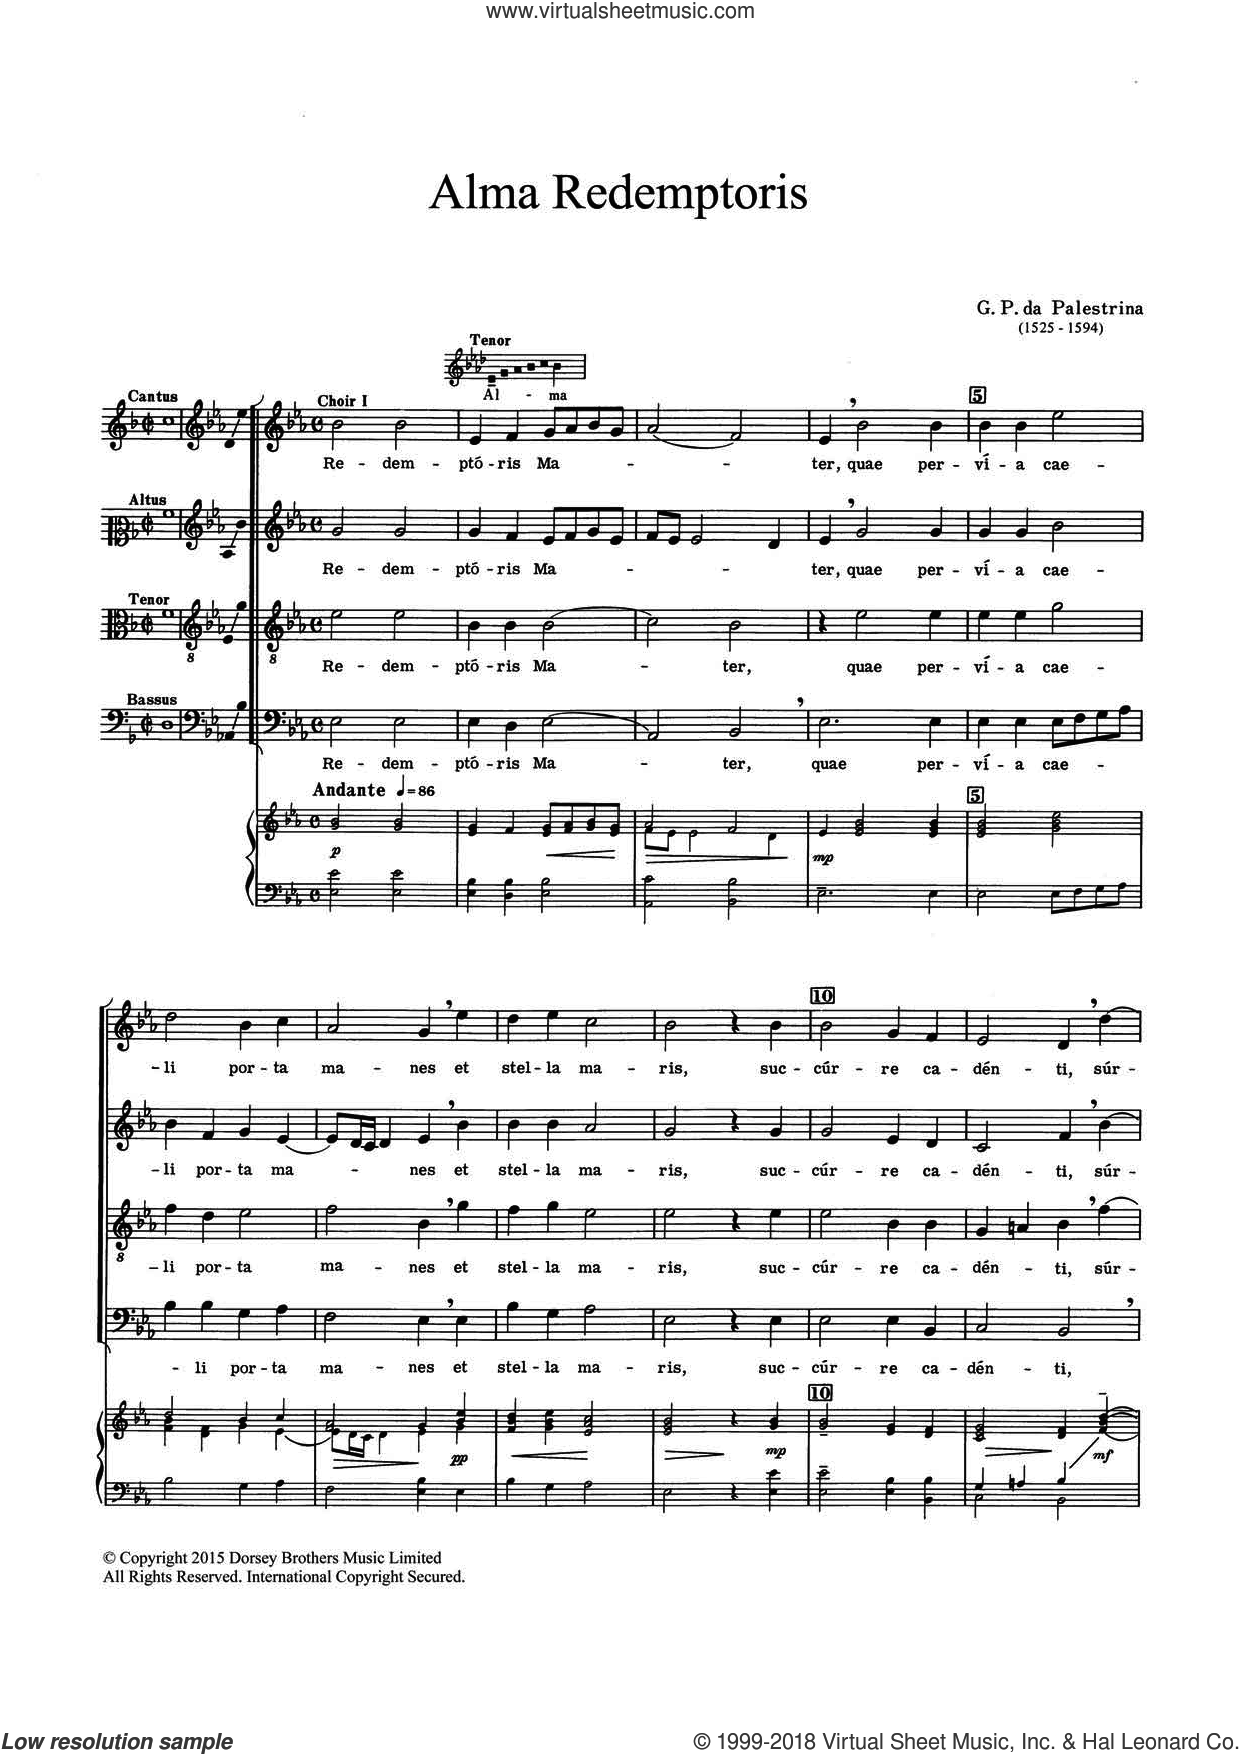 Alma Redemptoris sheet music for choir and piano by Giovanni Palestrina